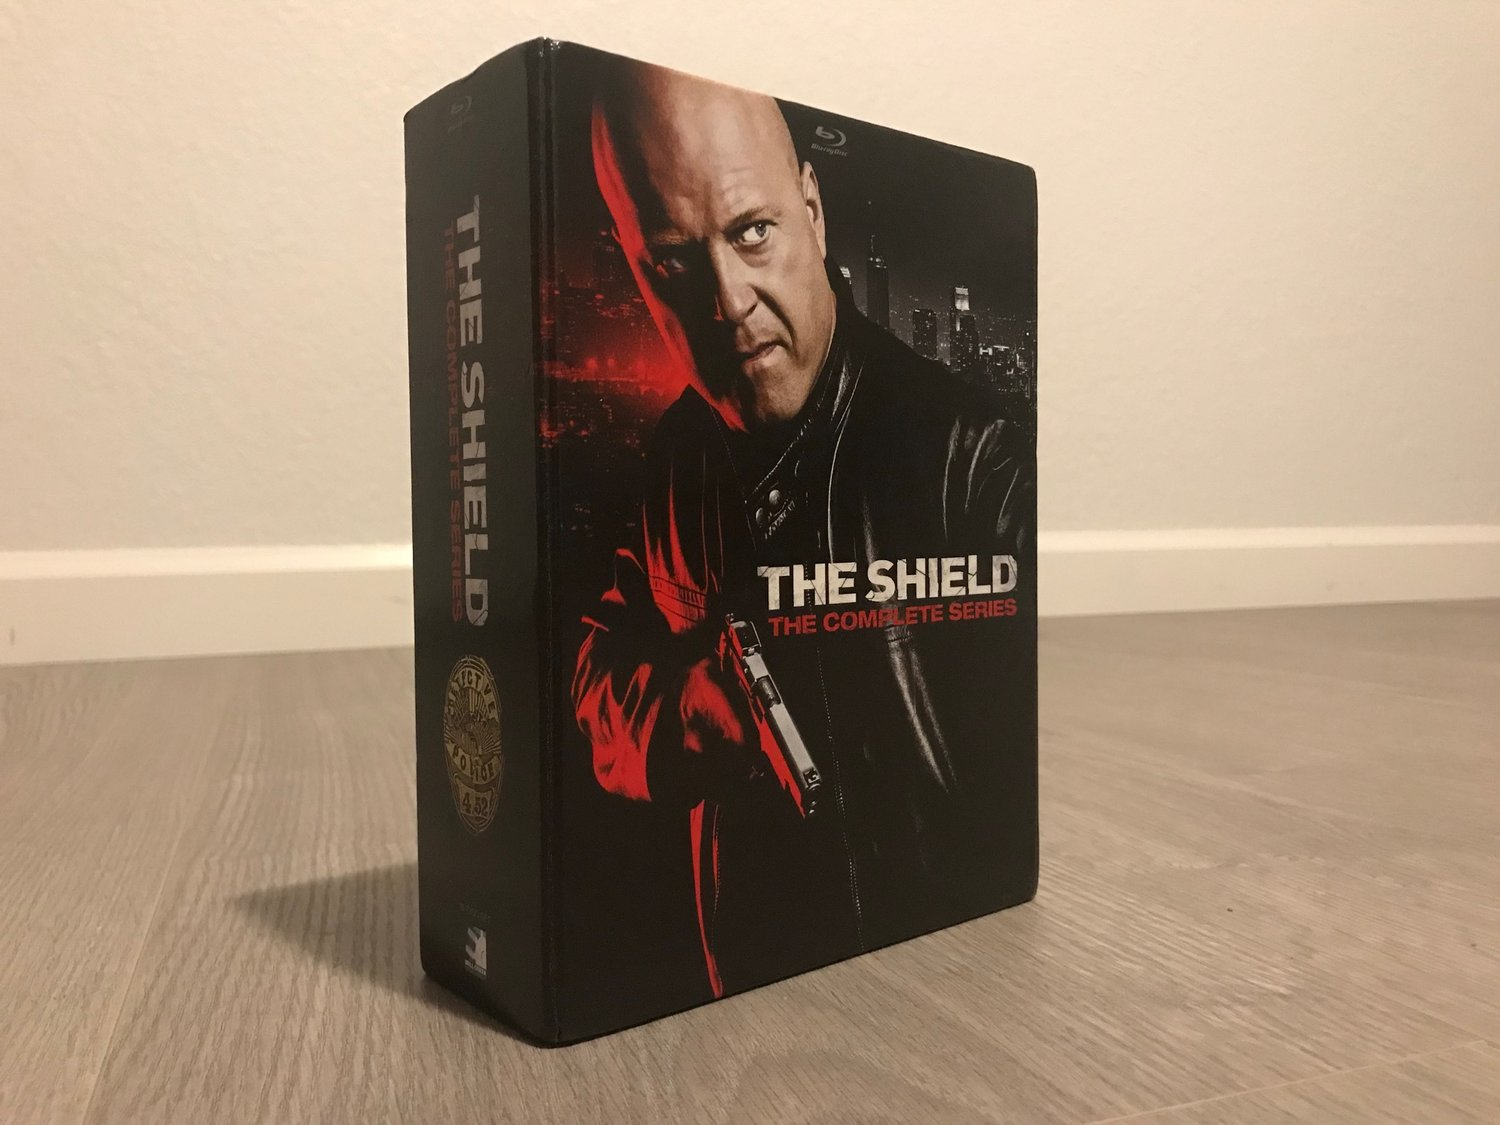 THE SHIELD - 4K SERIES REMASTER